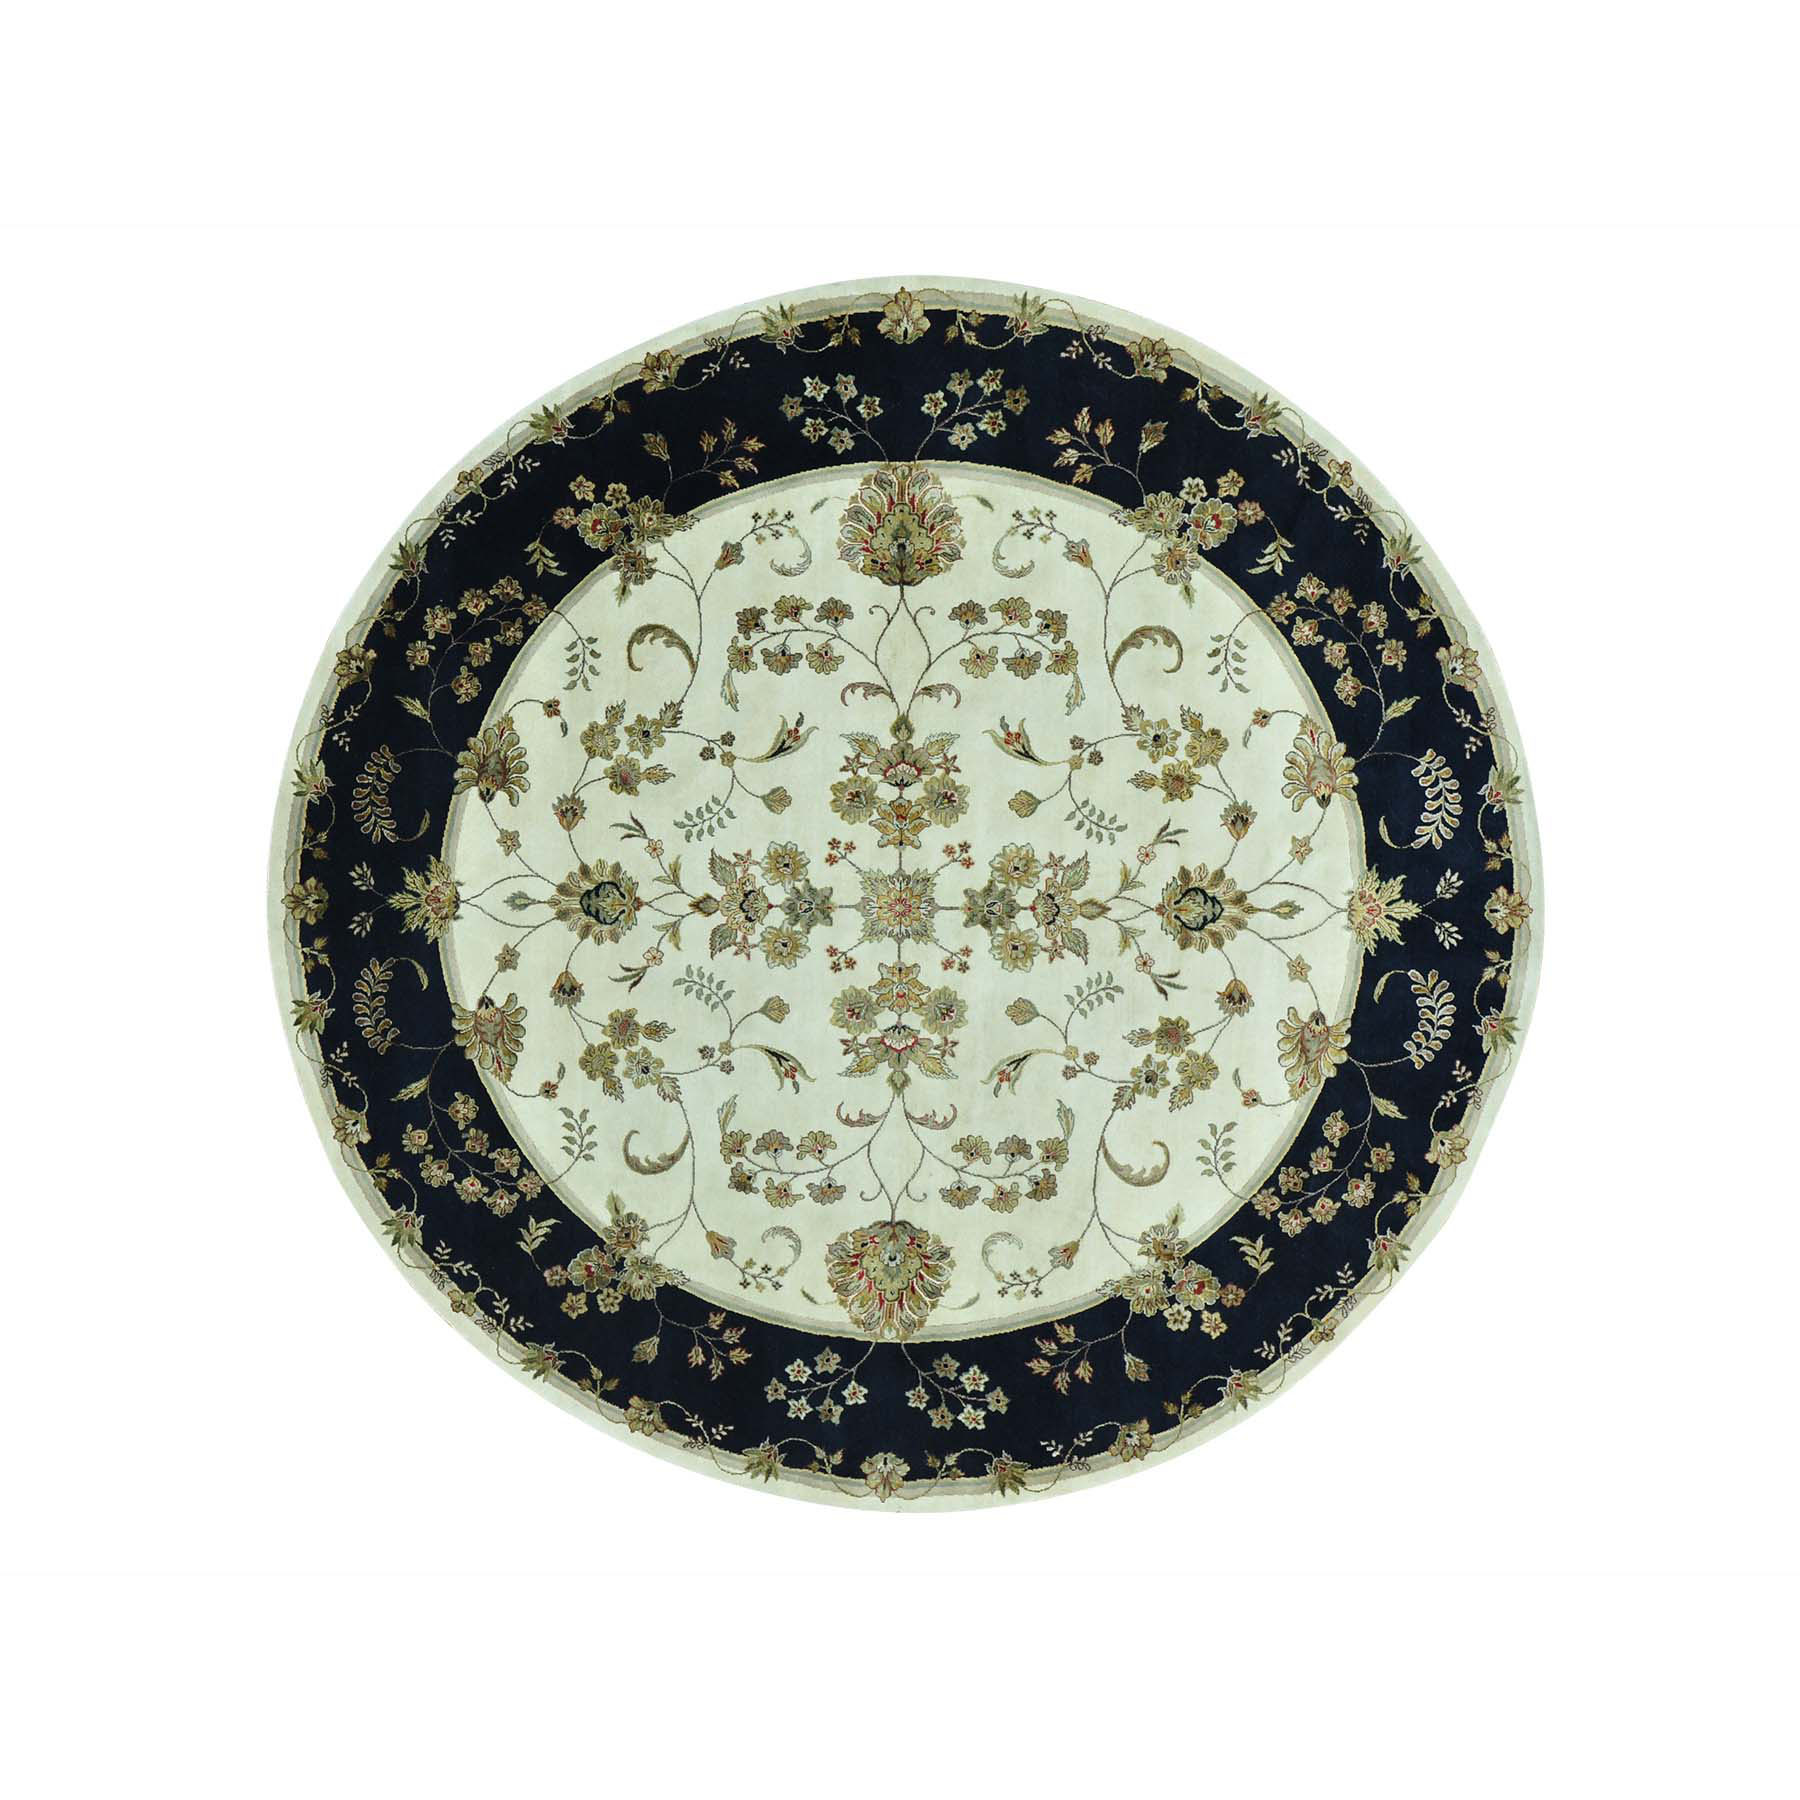 9'x9' Round Rajasthan Floral Design Wool And Silk Hand Woven Rug